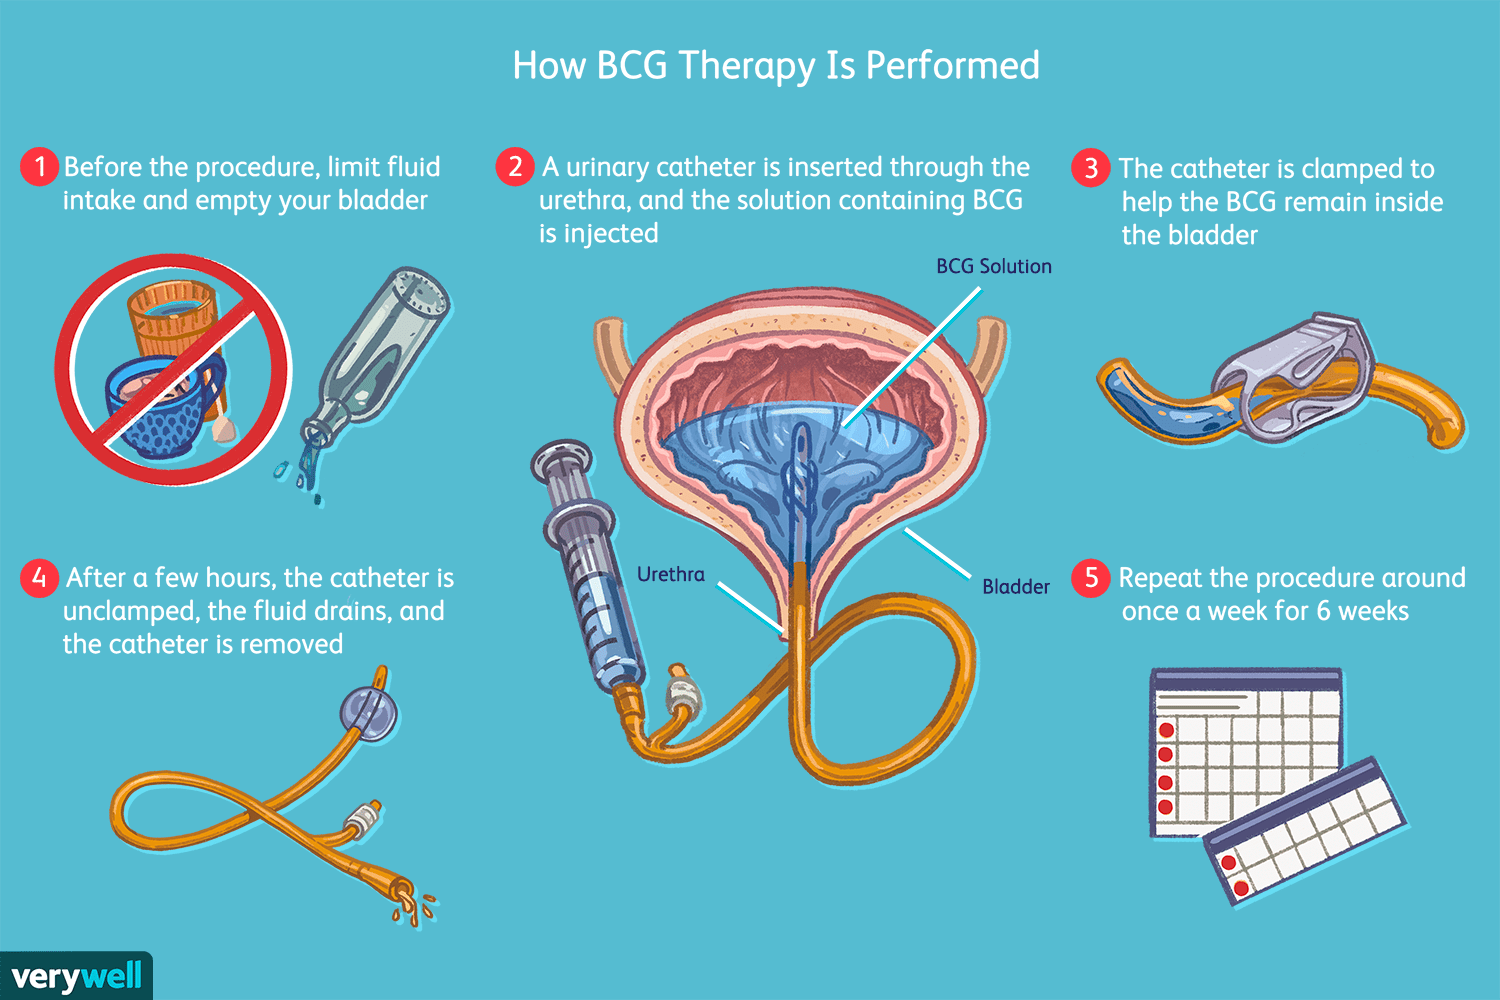 How BCG Therapy Is Performed